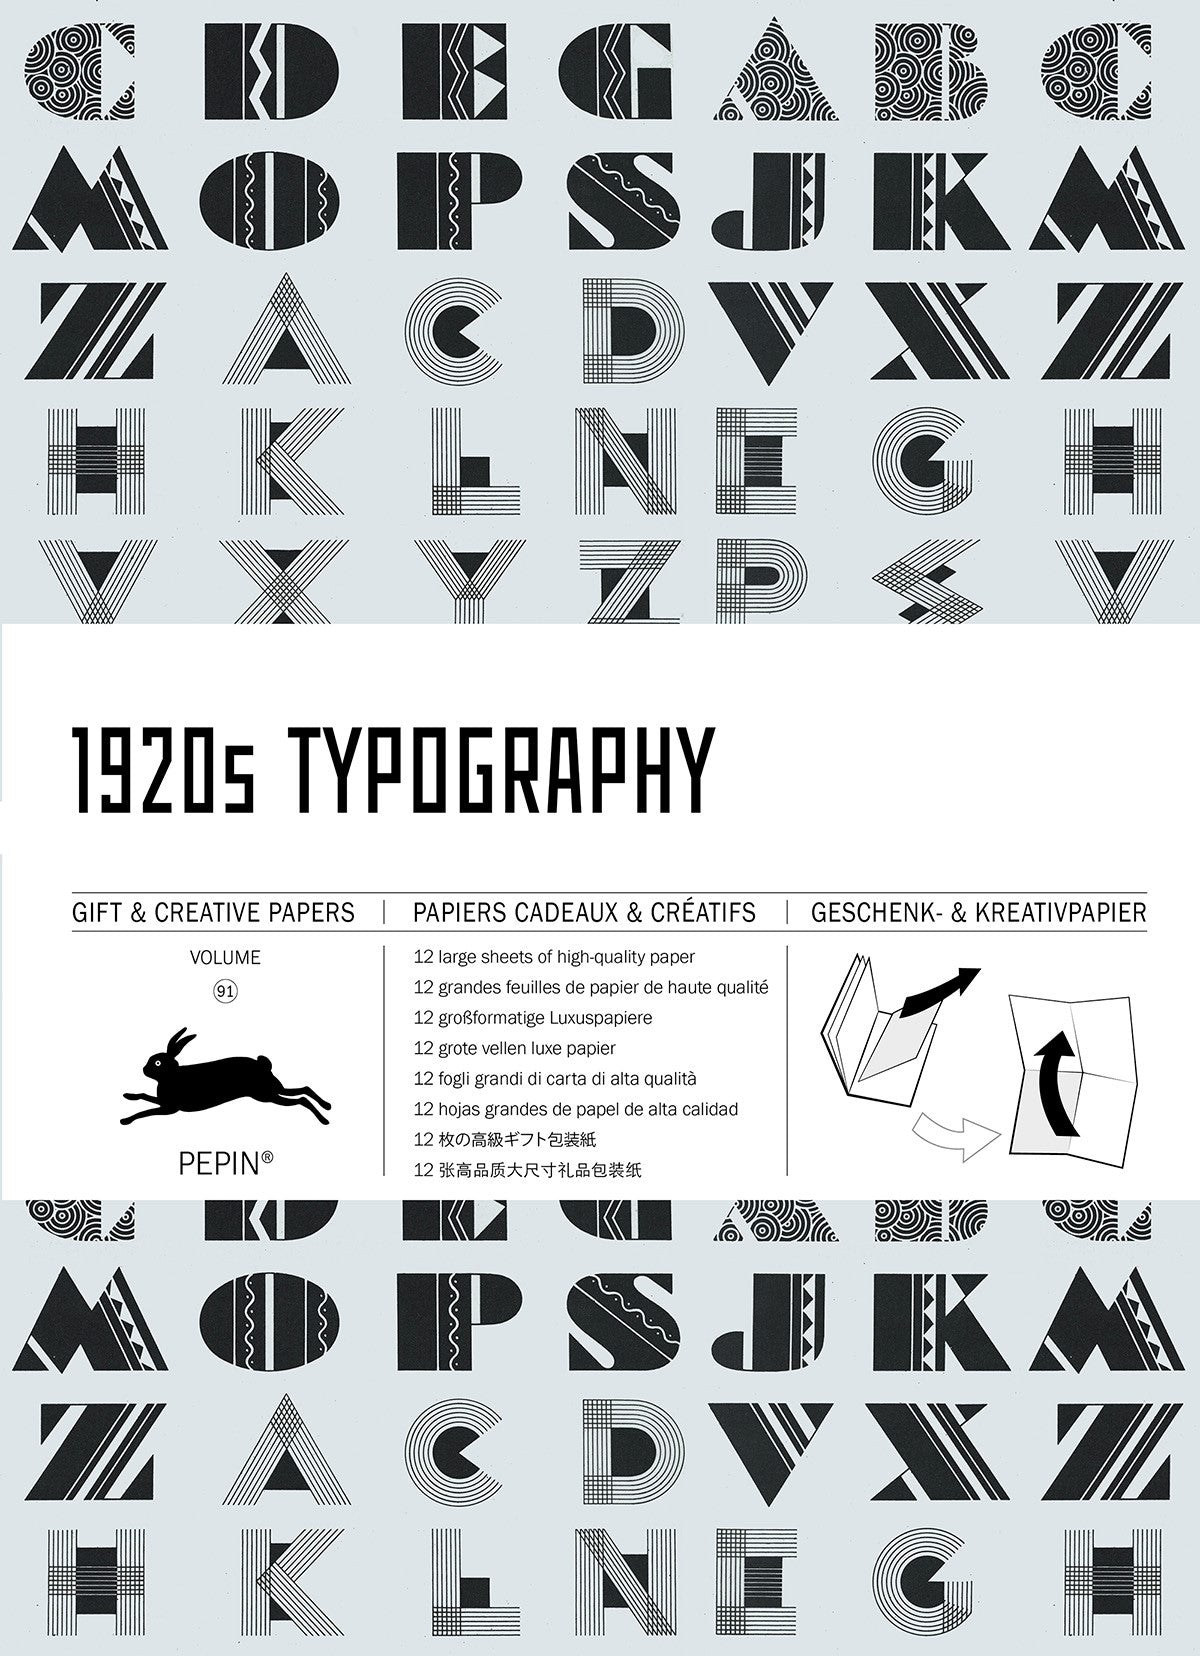 1920s Typography Gift & Creative Paper